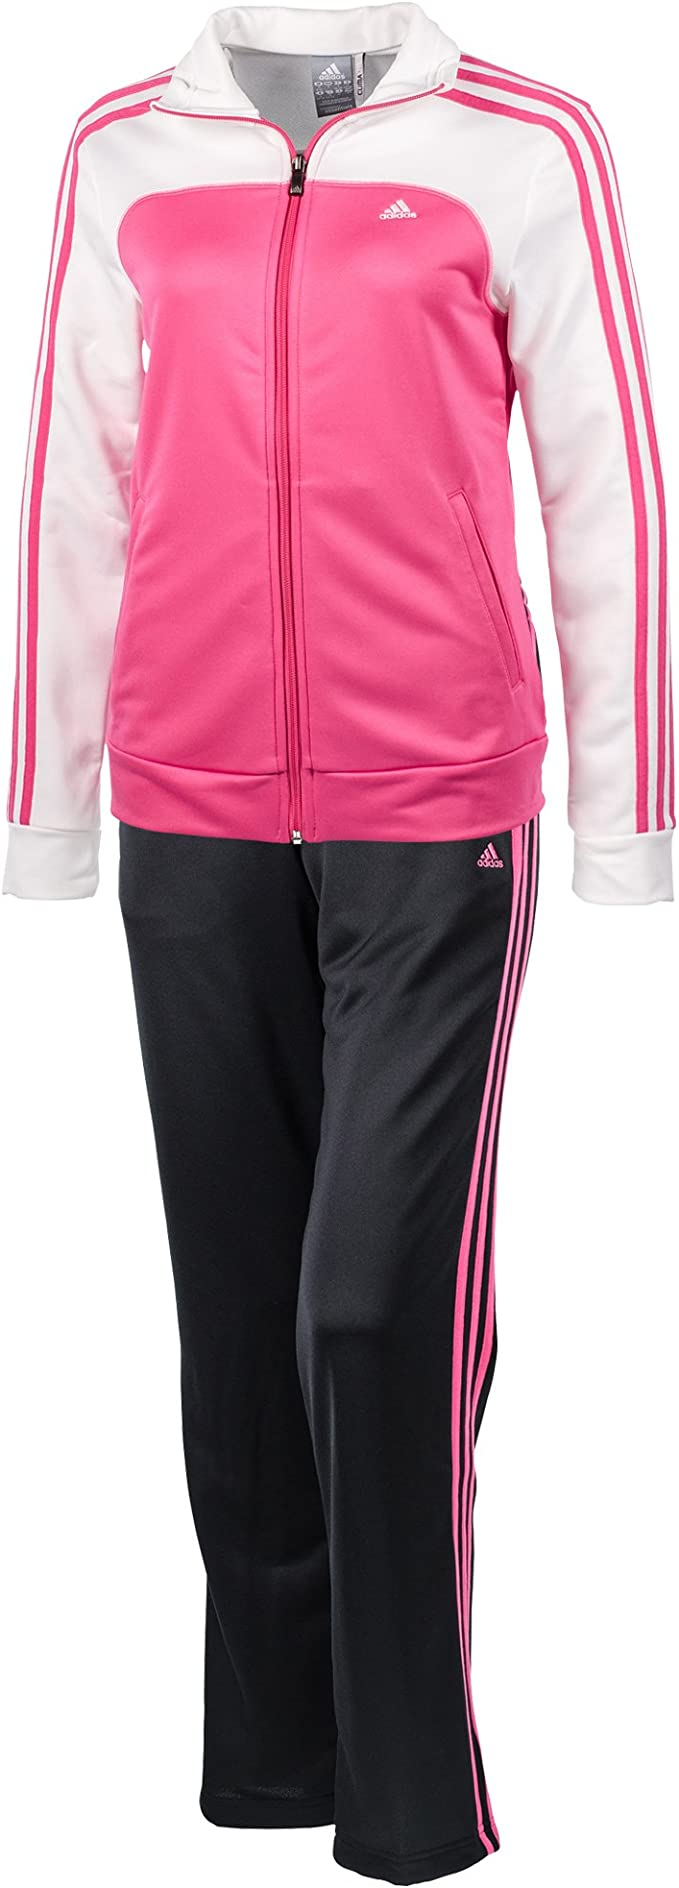 adidas 3S Young Knit Suit – Chándal para mujer women ClimaLite ...